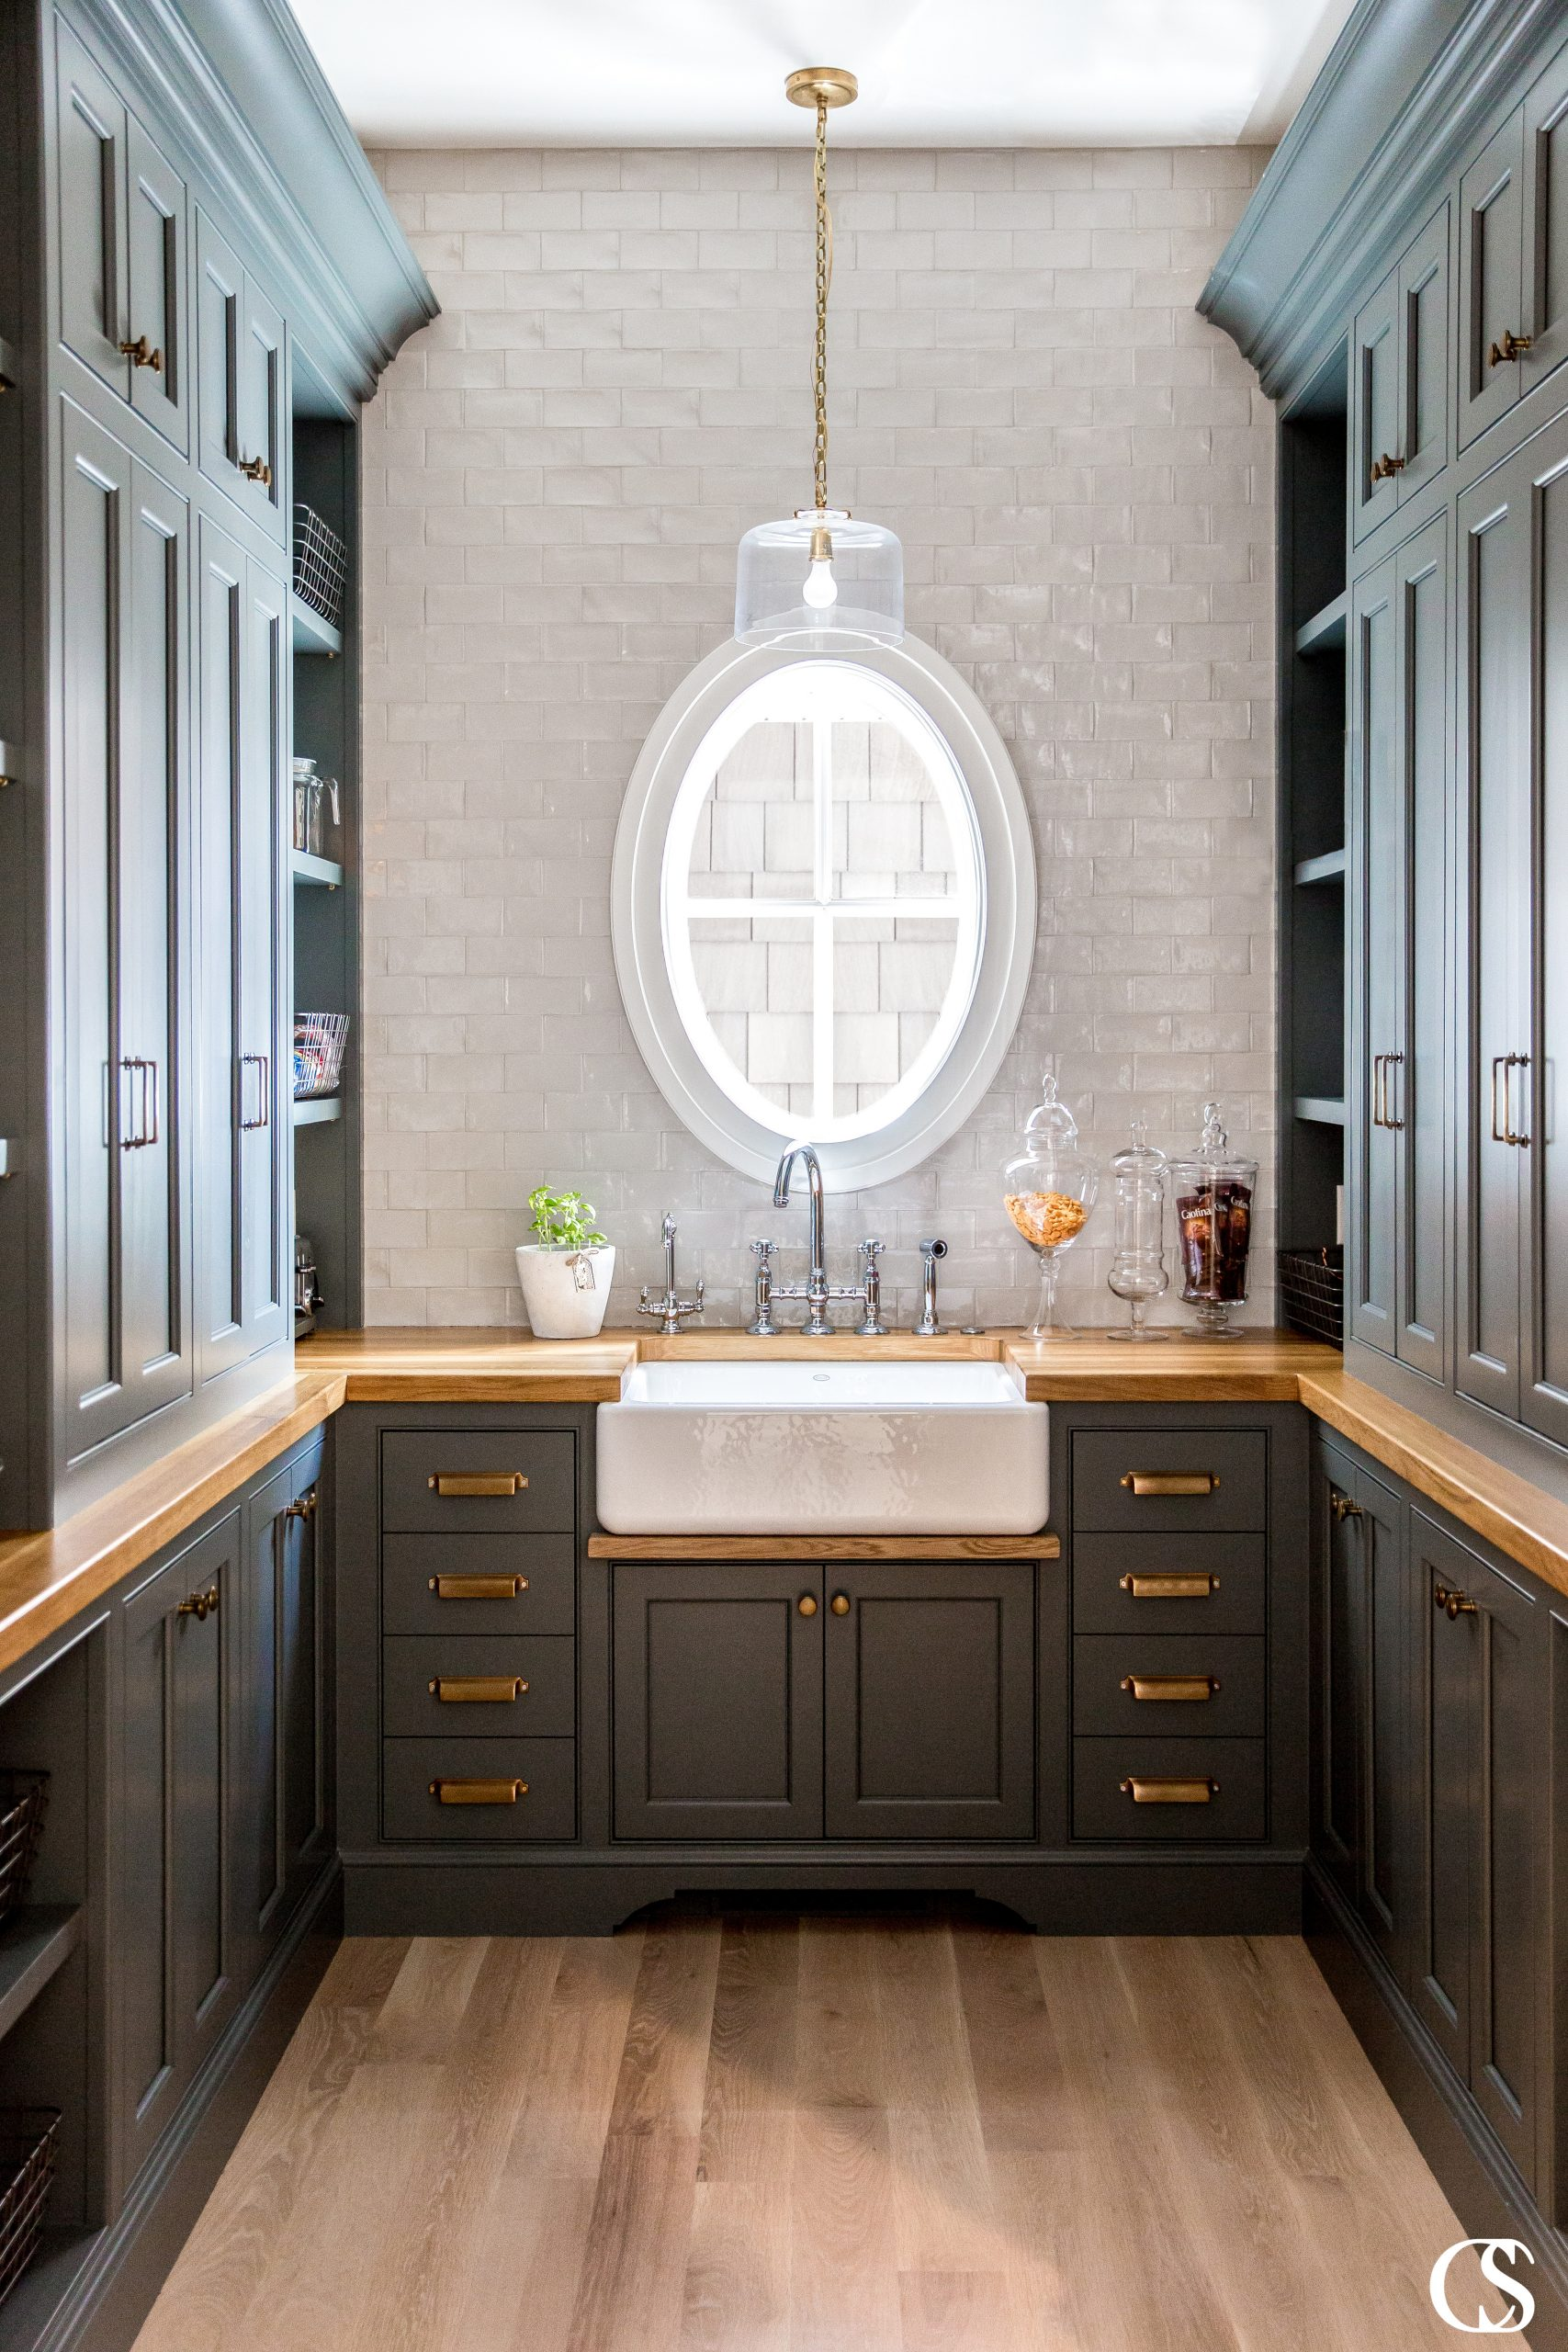 This custom pantry design included moody black cabinets, brass hardware, and oak countertops with plenty of space for style and storage.